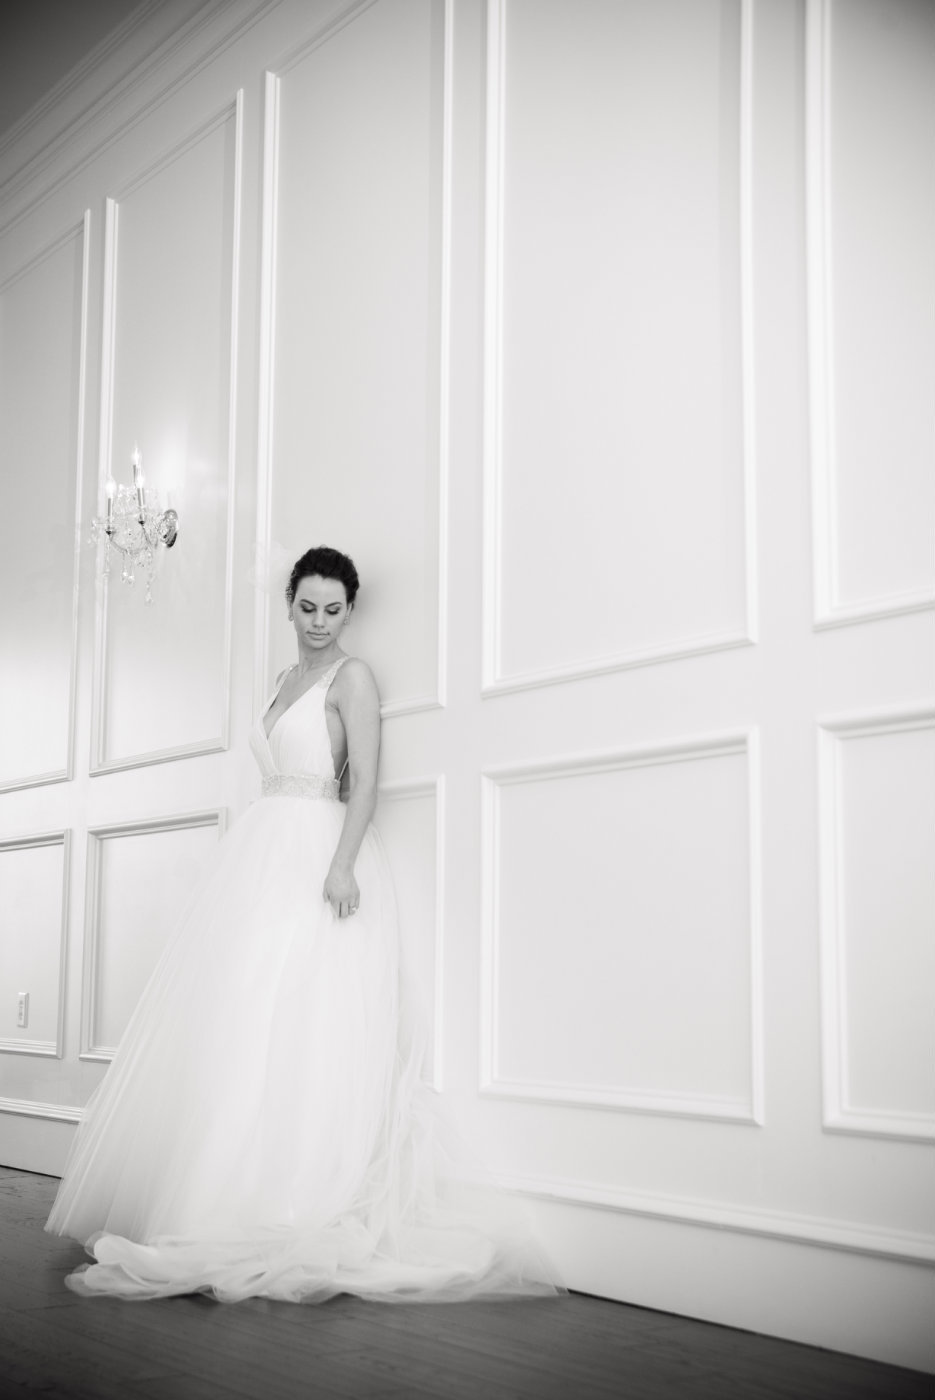 The Milestone brides photos by Brittany Barclay Photography